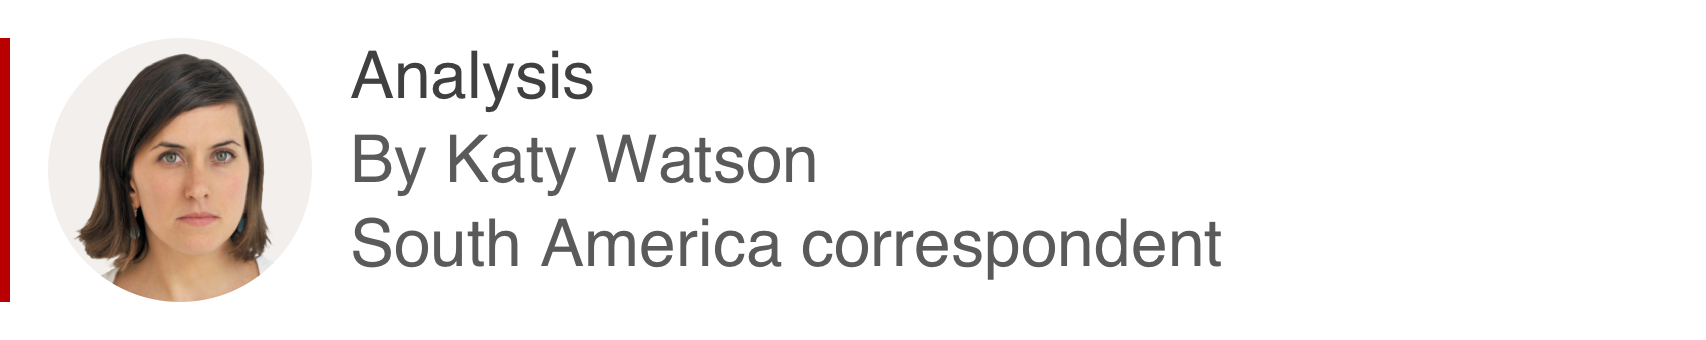 Analysis box by Katy Watson, South America correspondent